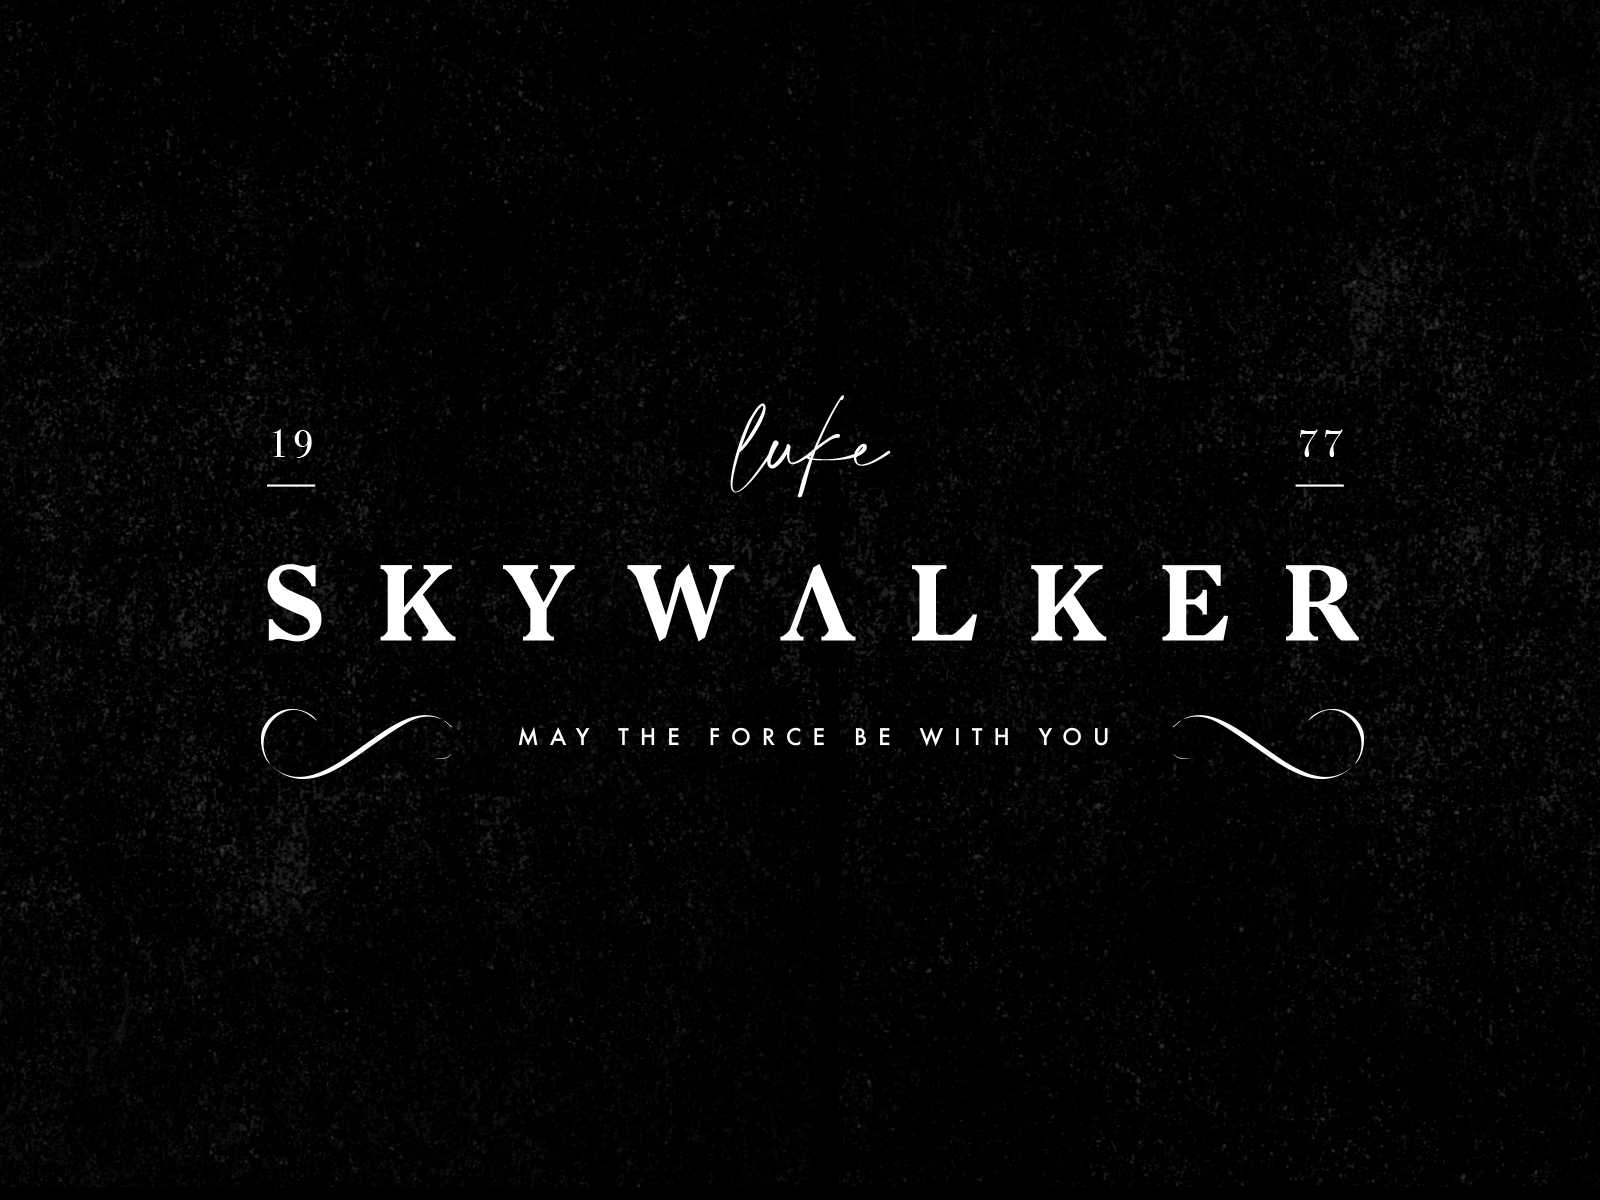 Luck Skywalker Logo By Mauro Faustino On Dribbble